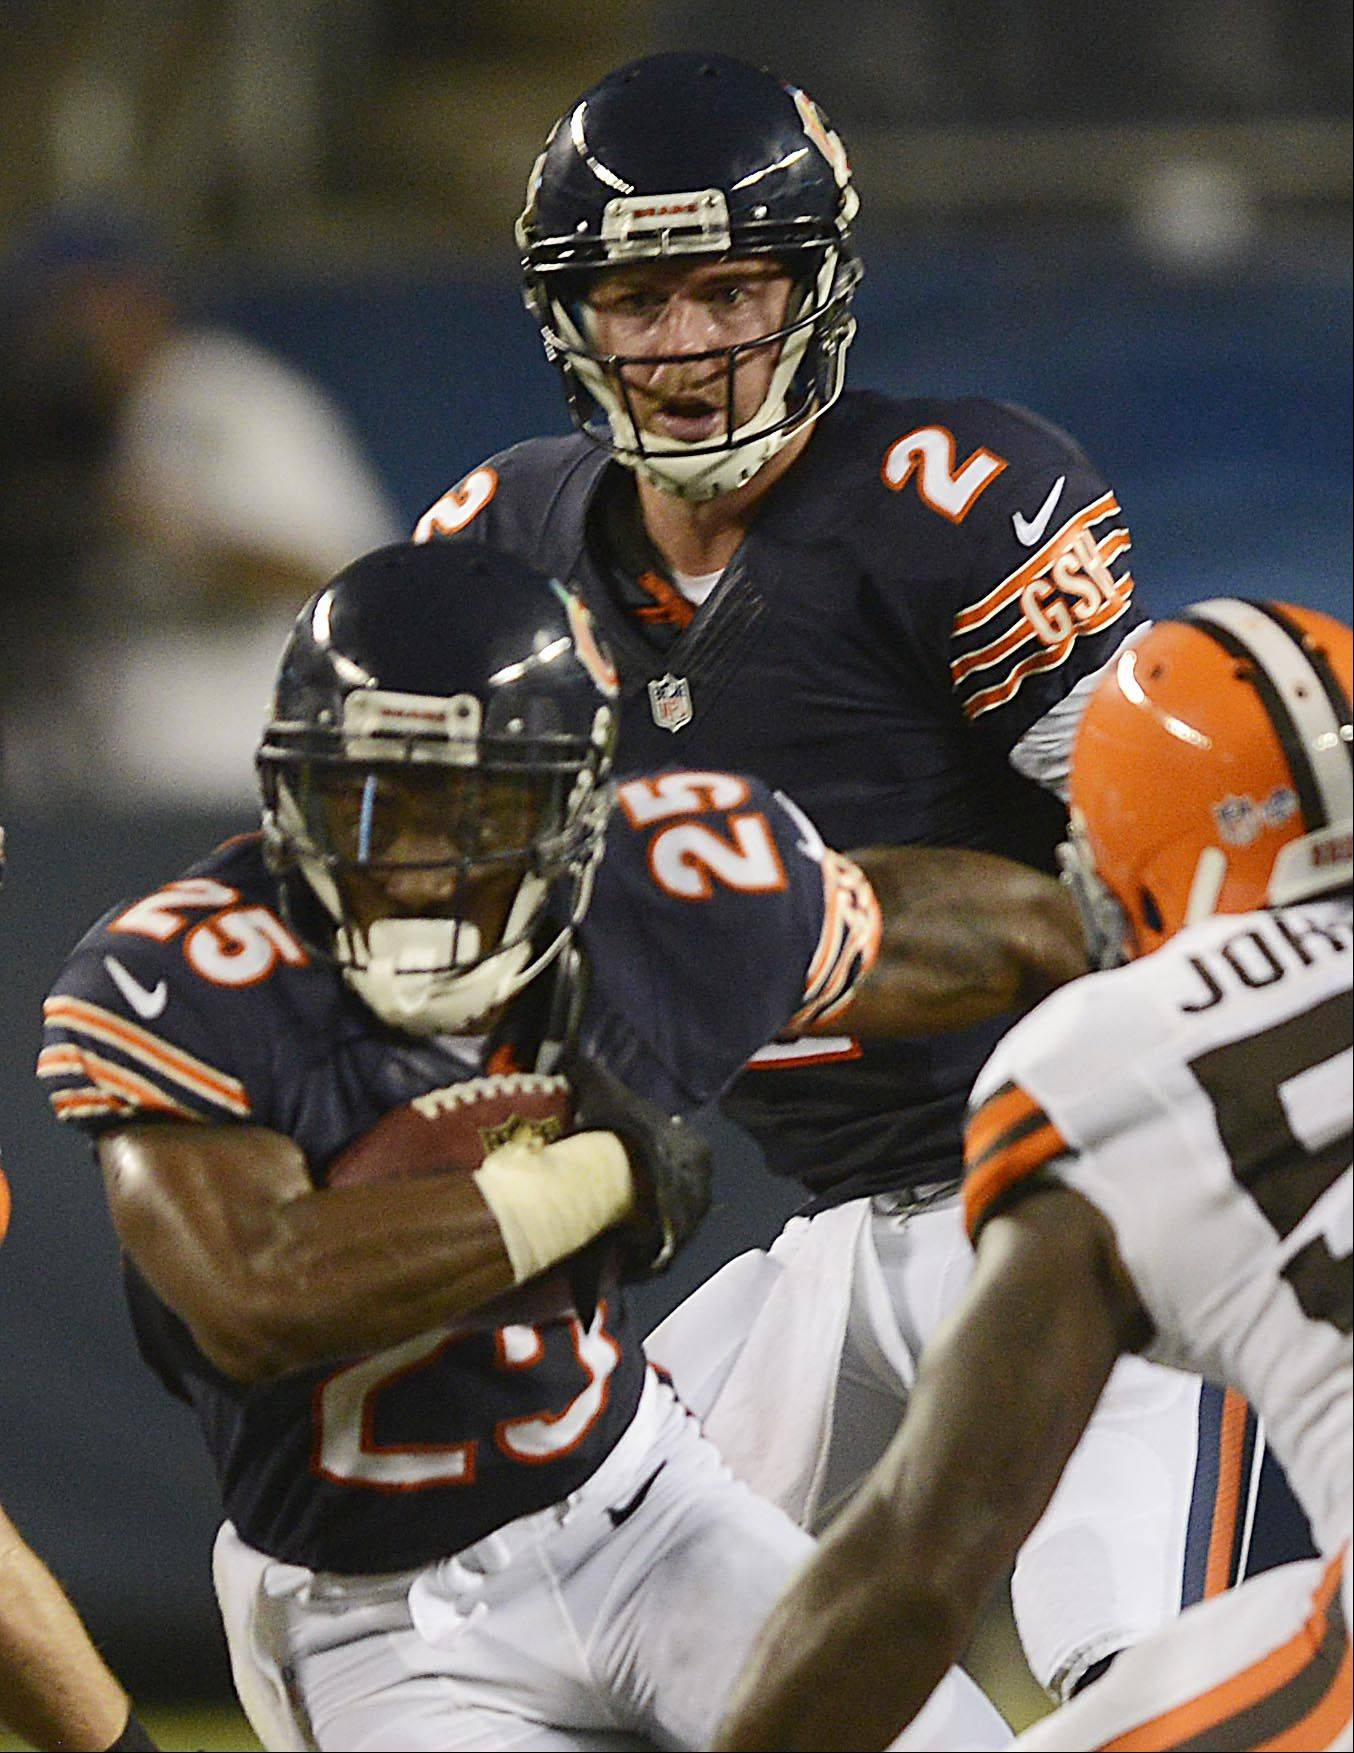 Chicago Bears quarterback Jordan Palmer watches running back Armando Allen take the ball against the Clevelend Browns.